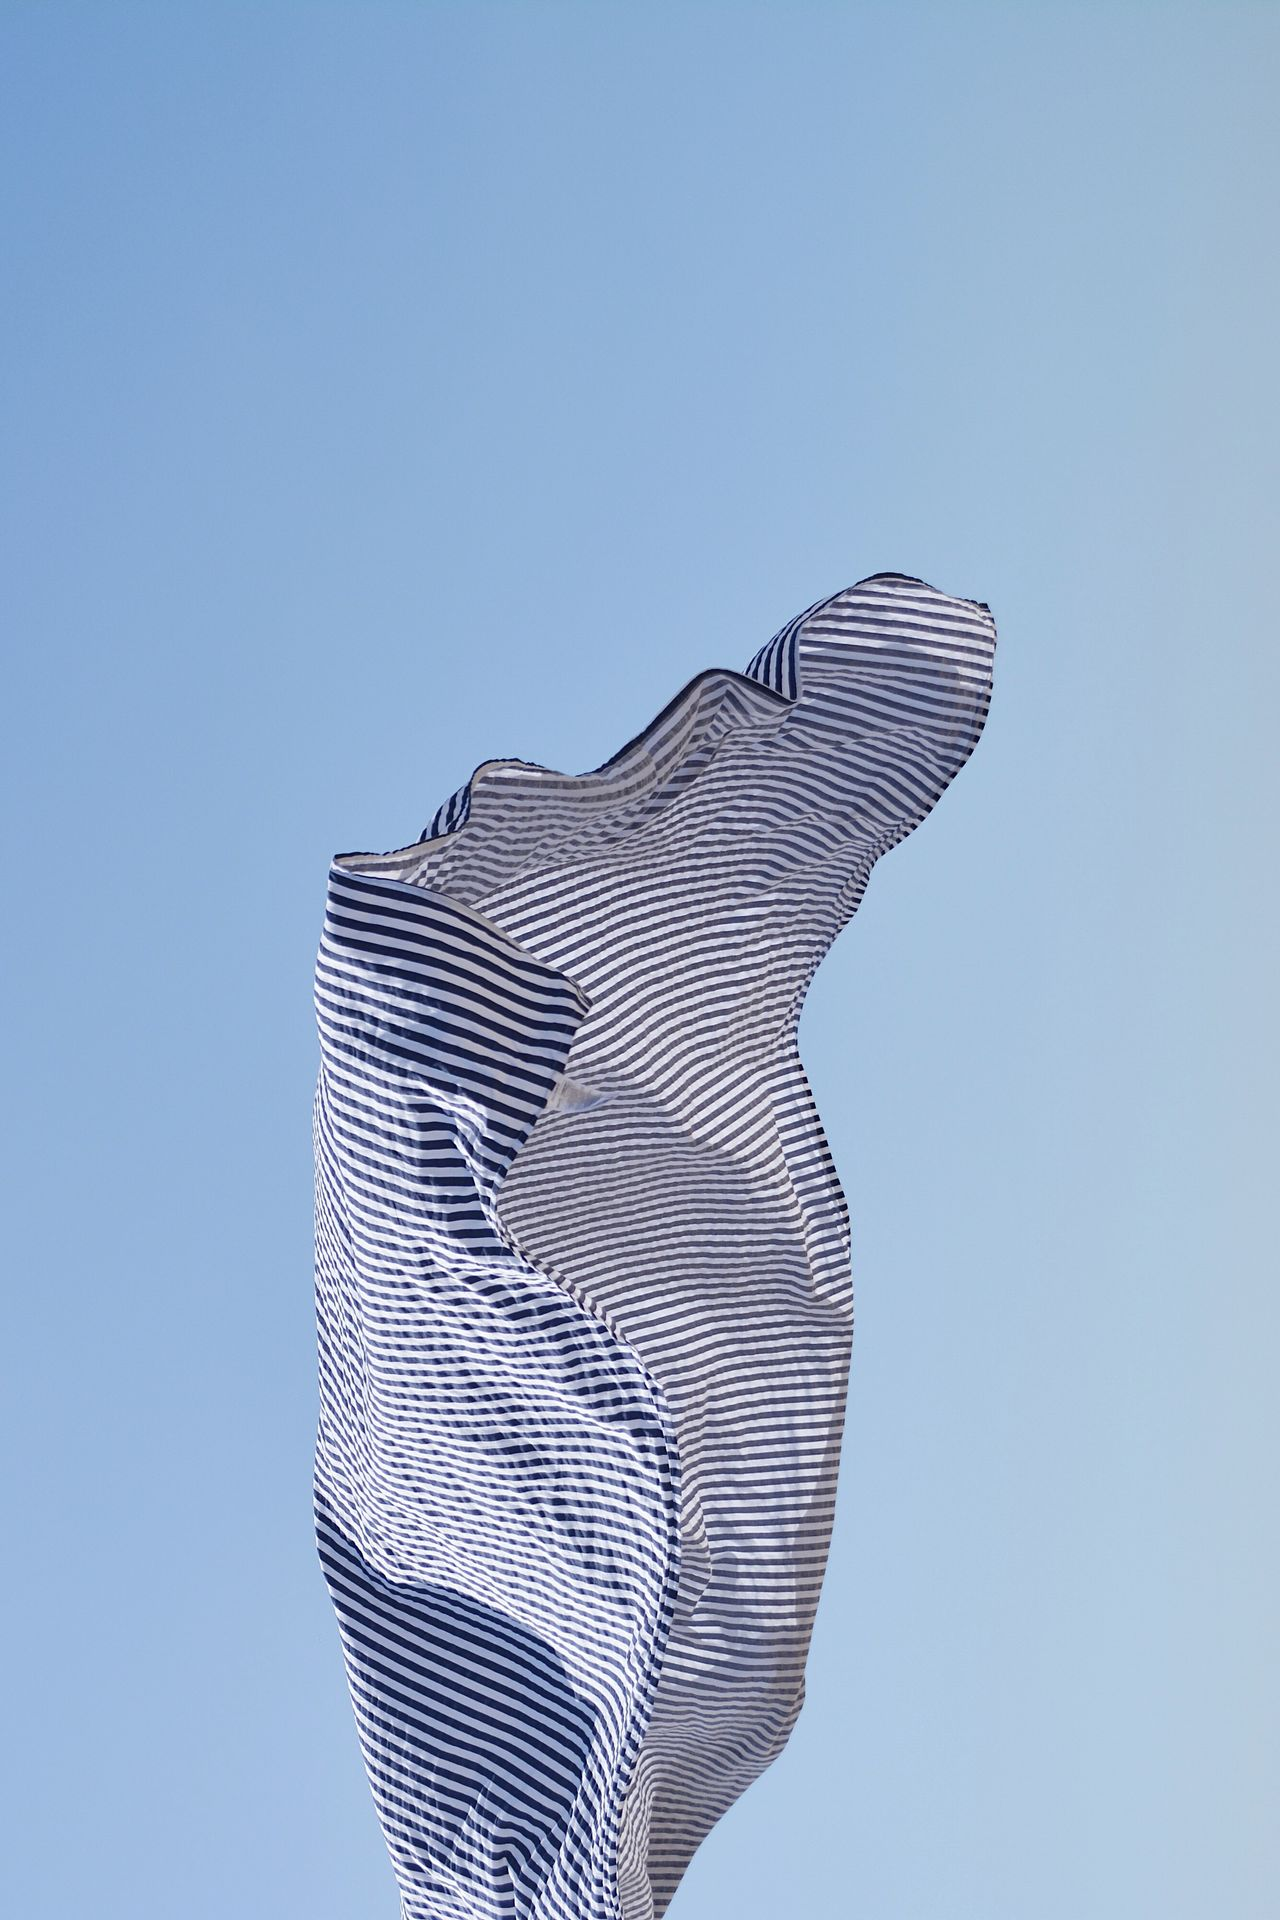 Low angle view of fabric against clear blue sky